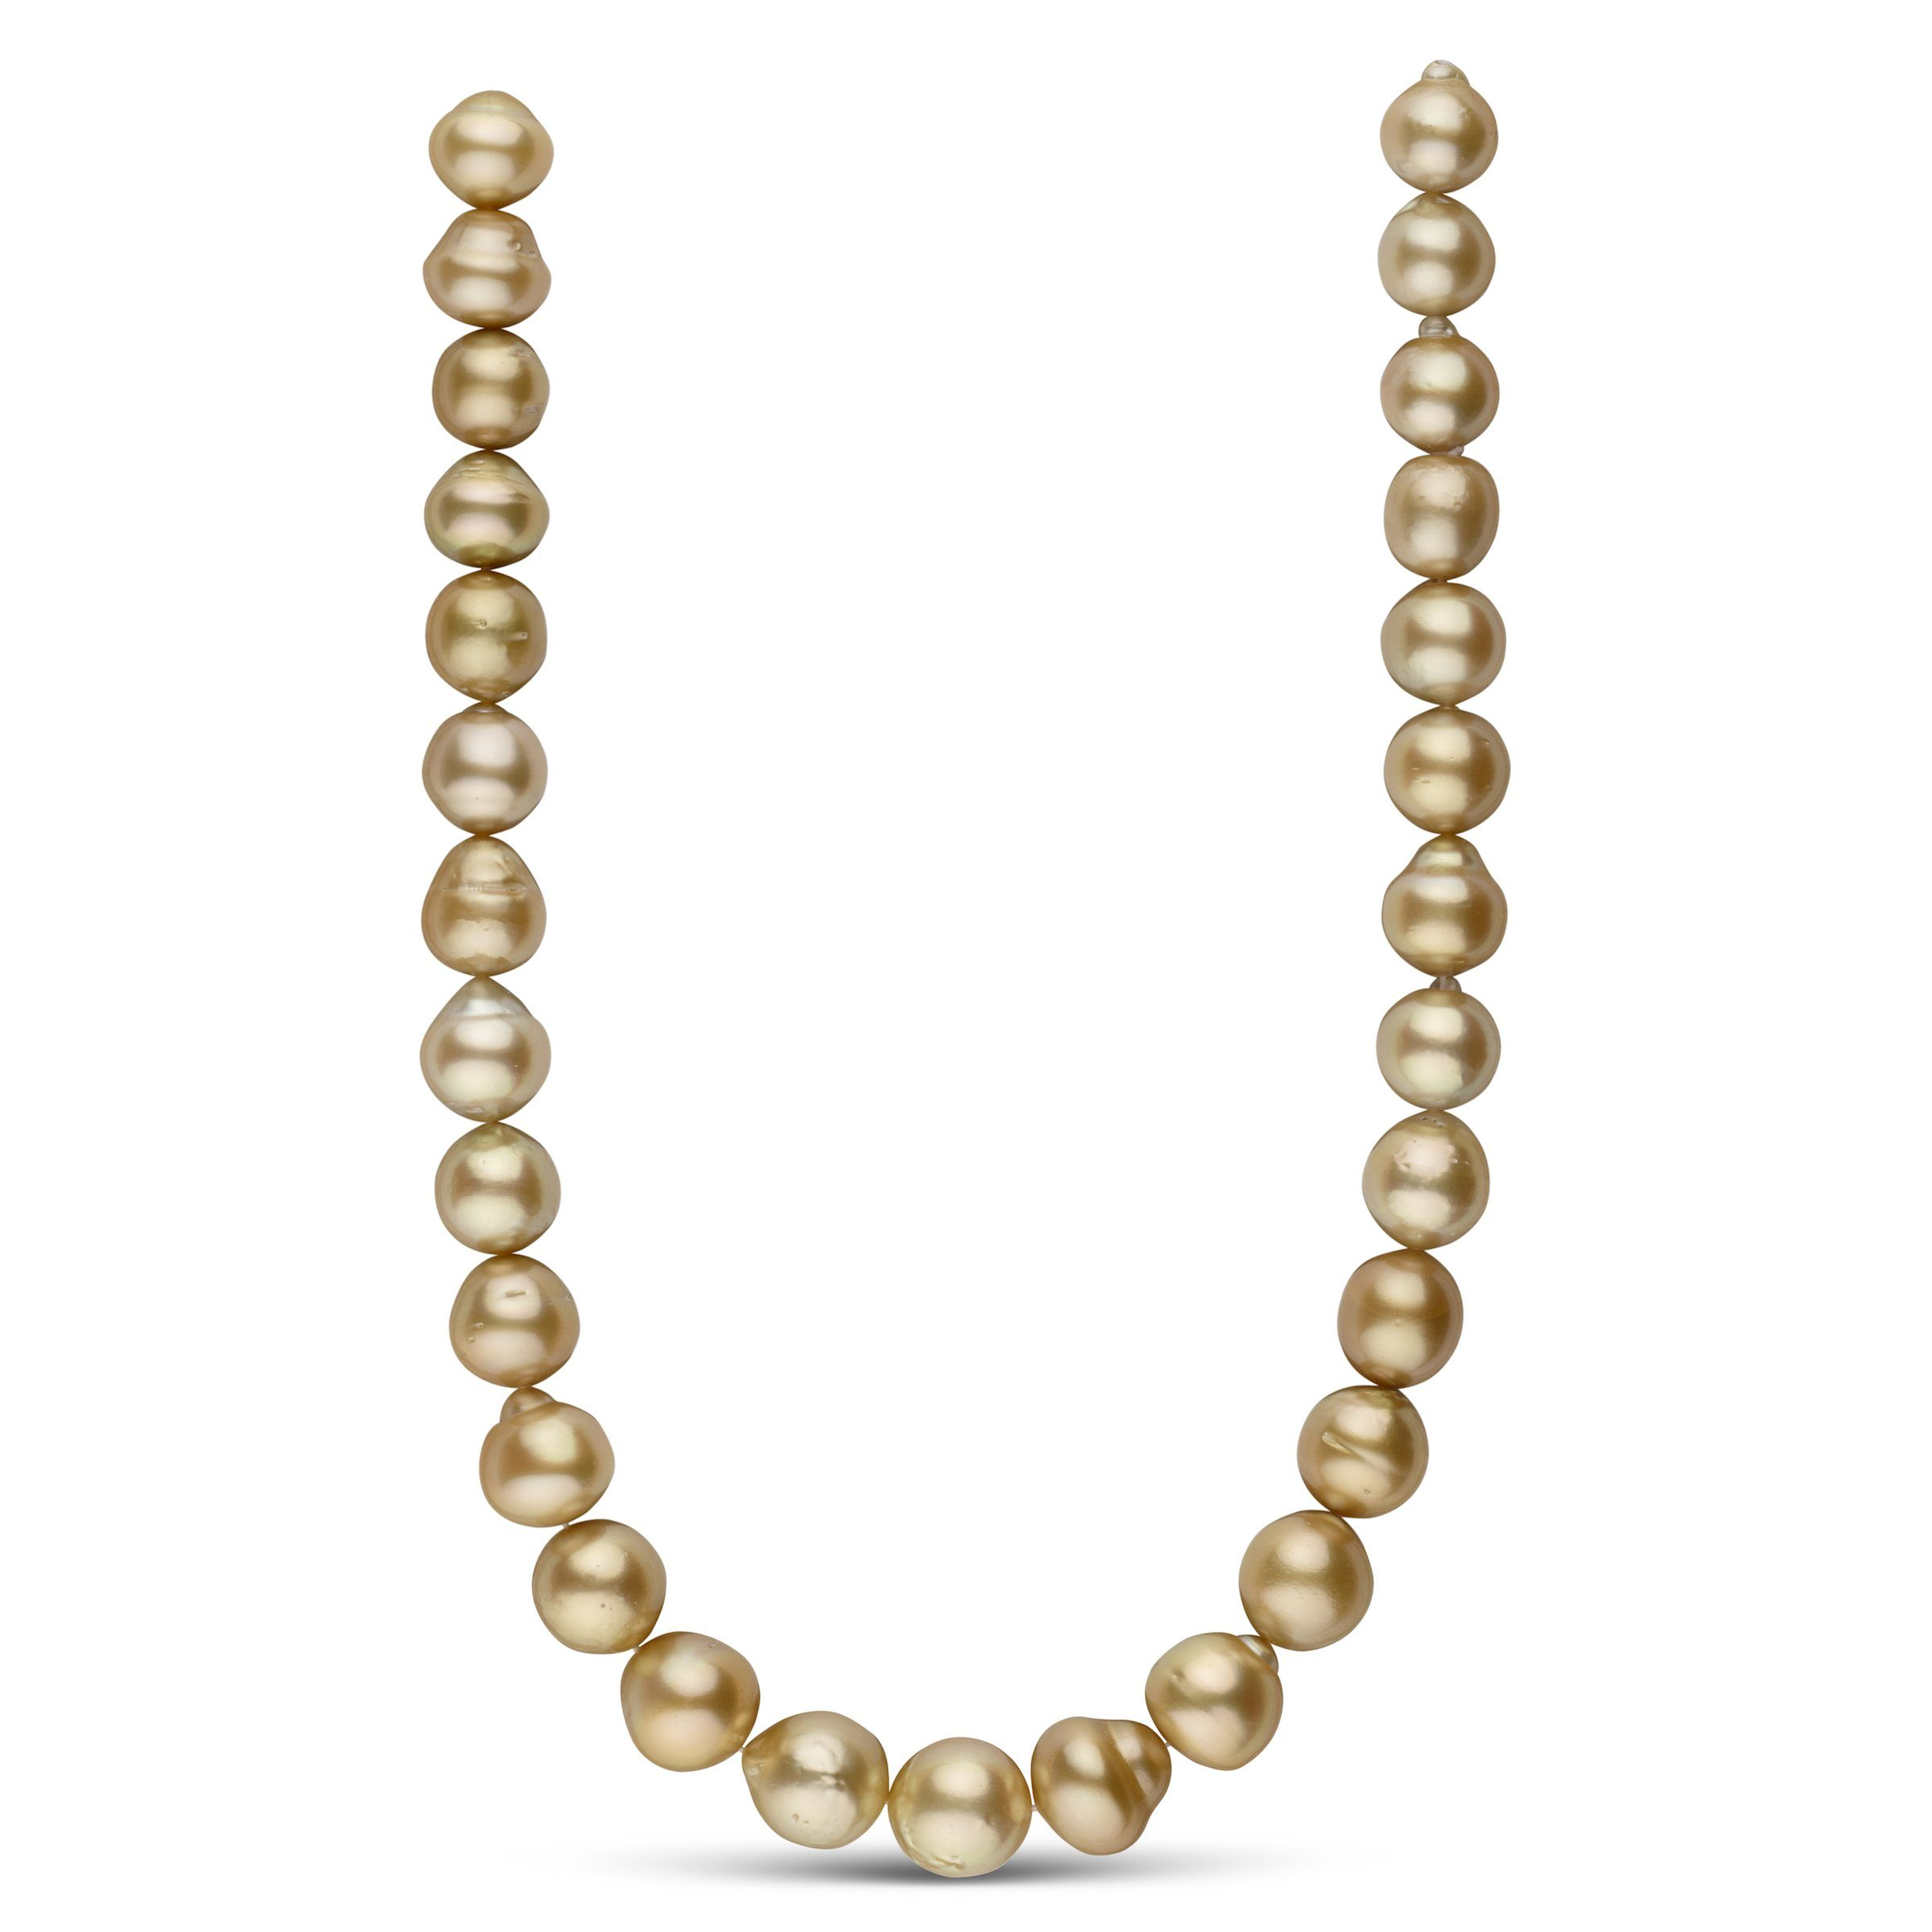 12.5-14.9 mm AA+ Golden South Sea Baroque Necklace